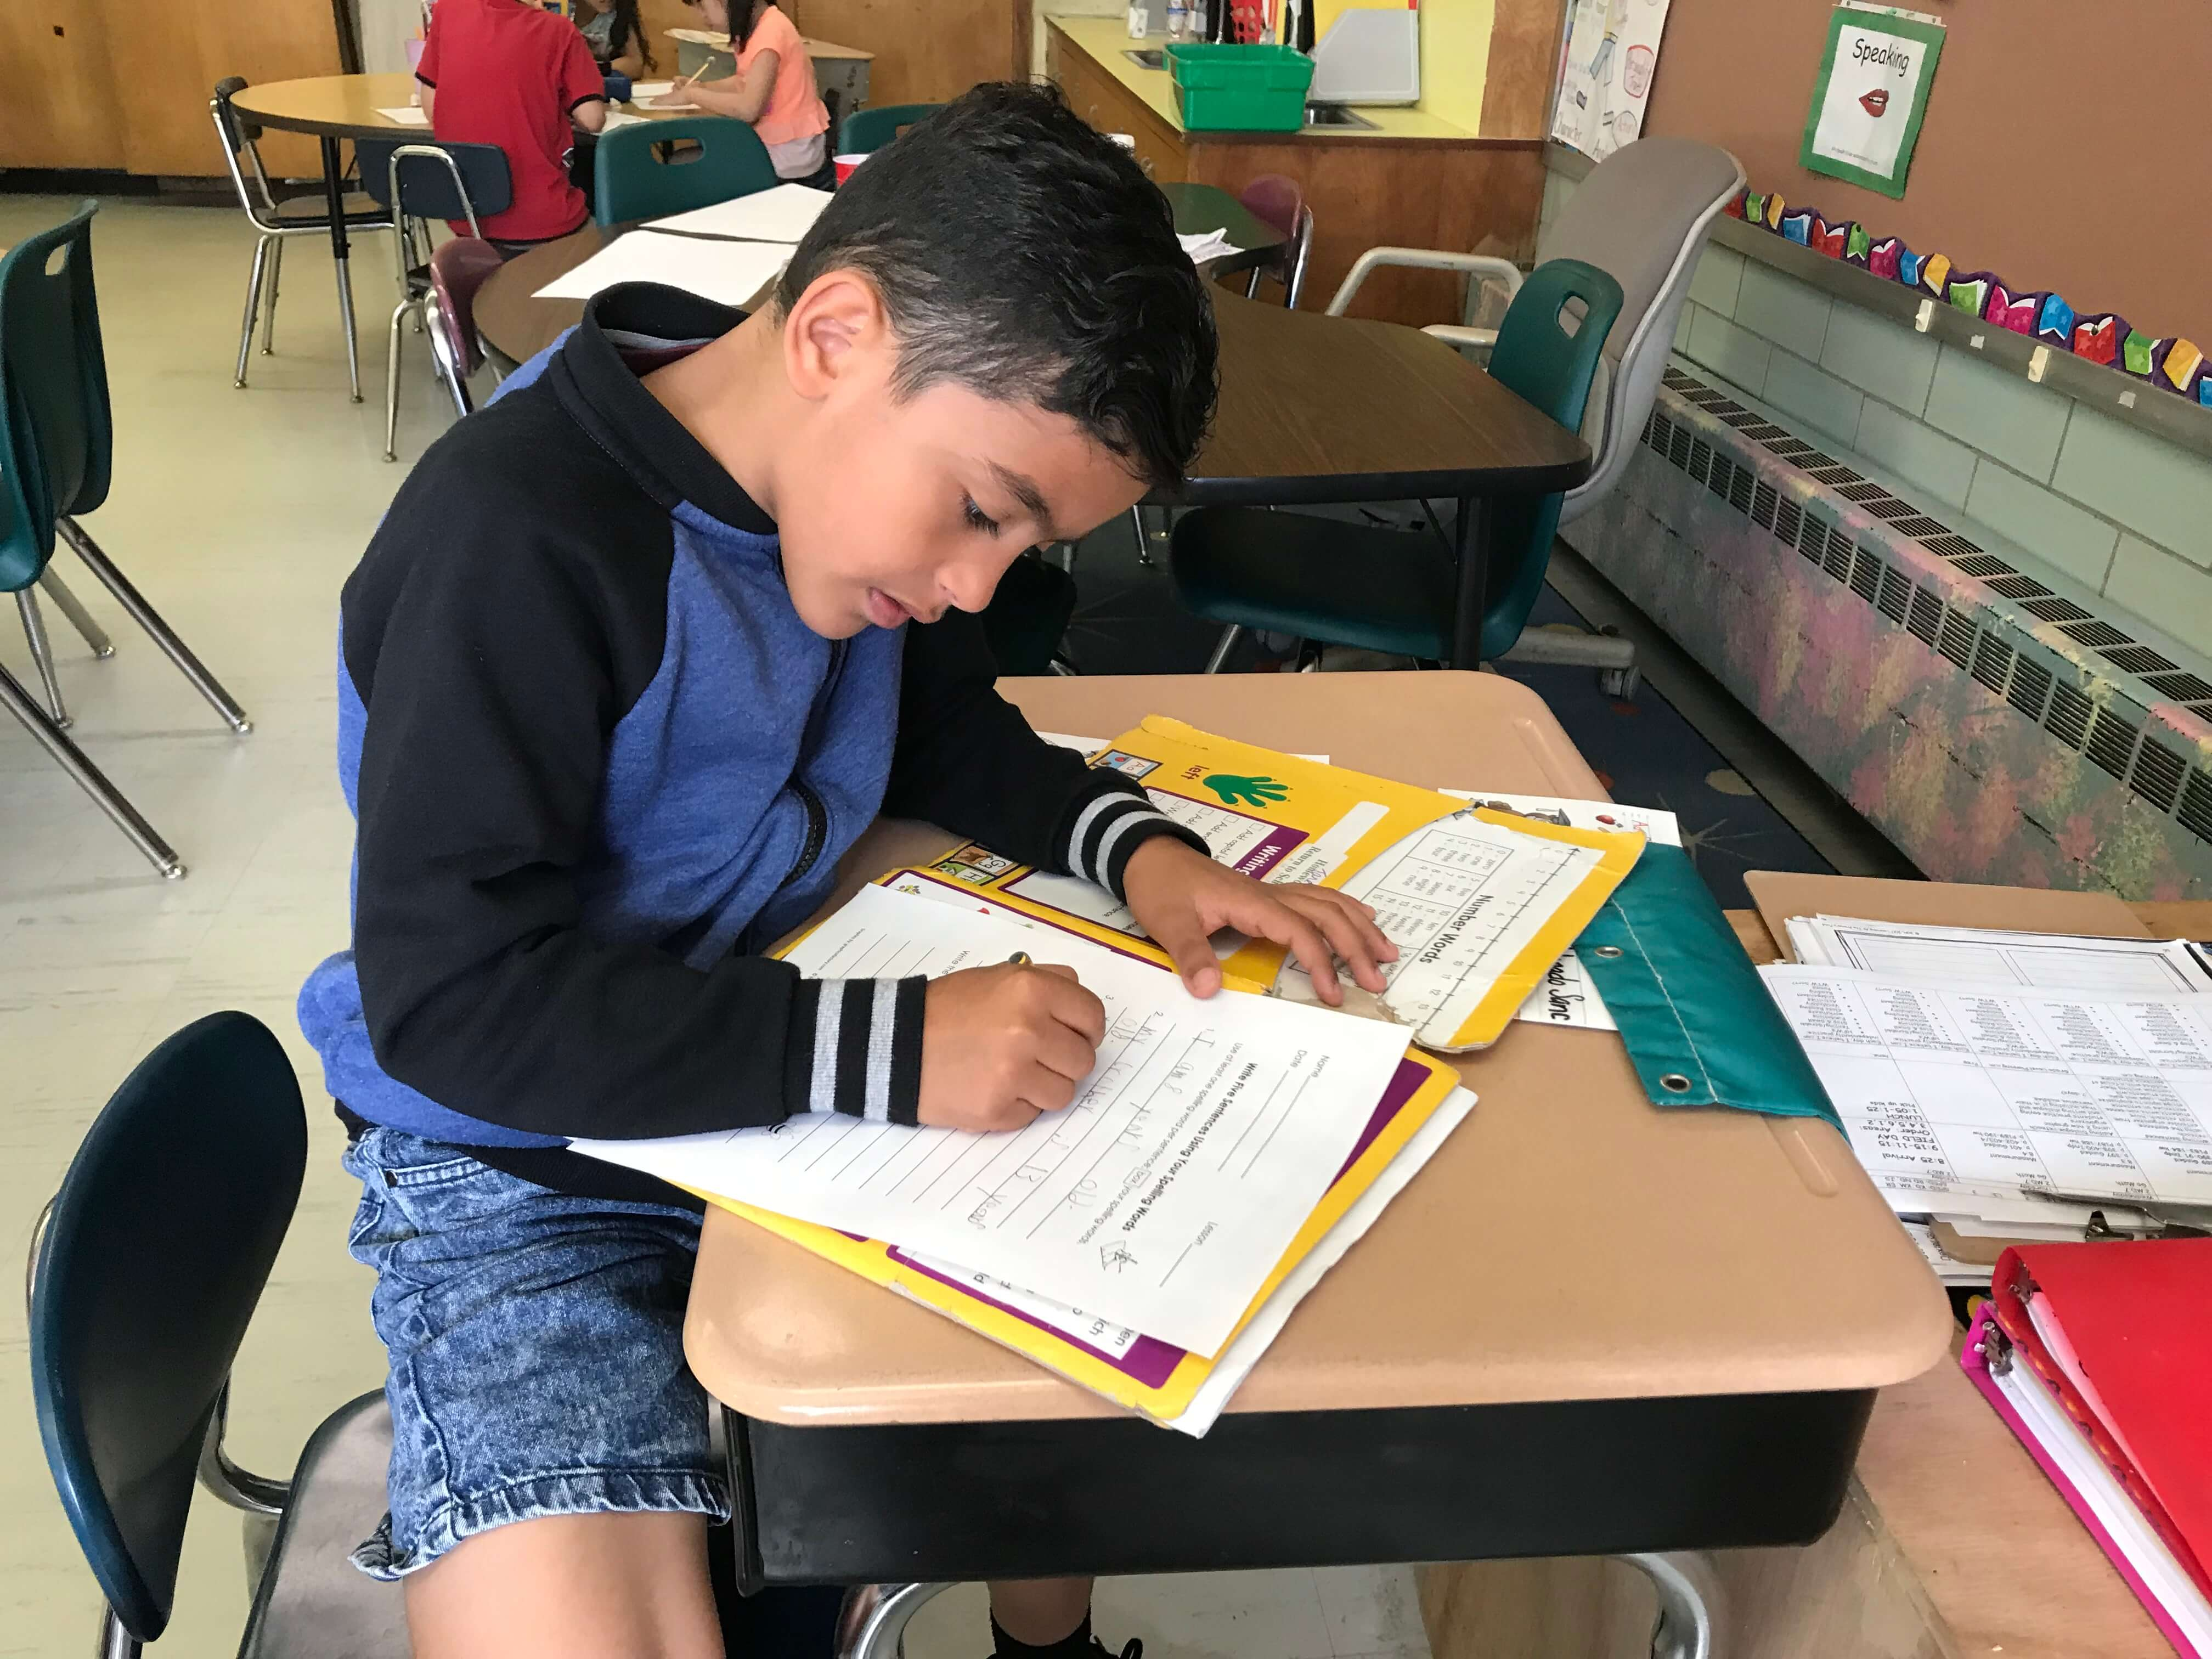 young boy writing in work book on desk, wearing jean shorts and a blue and black shirt